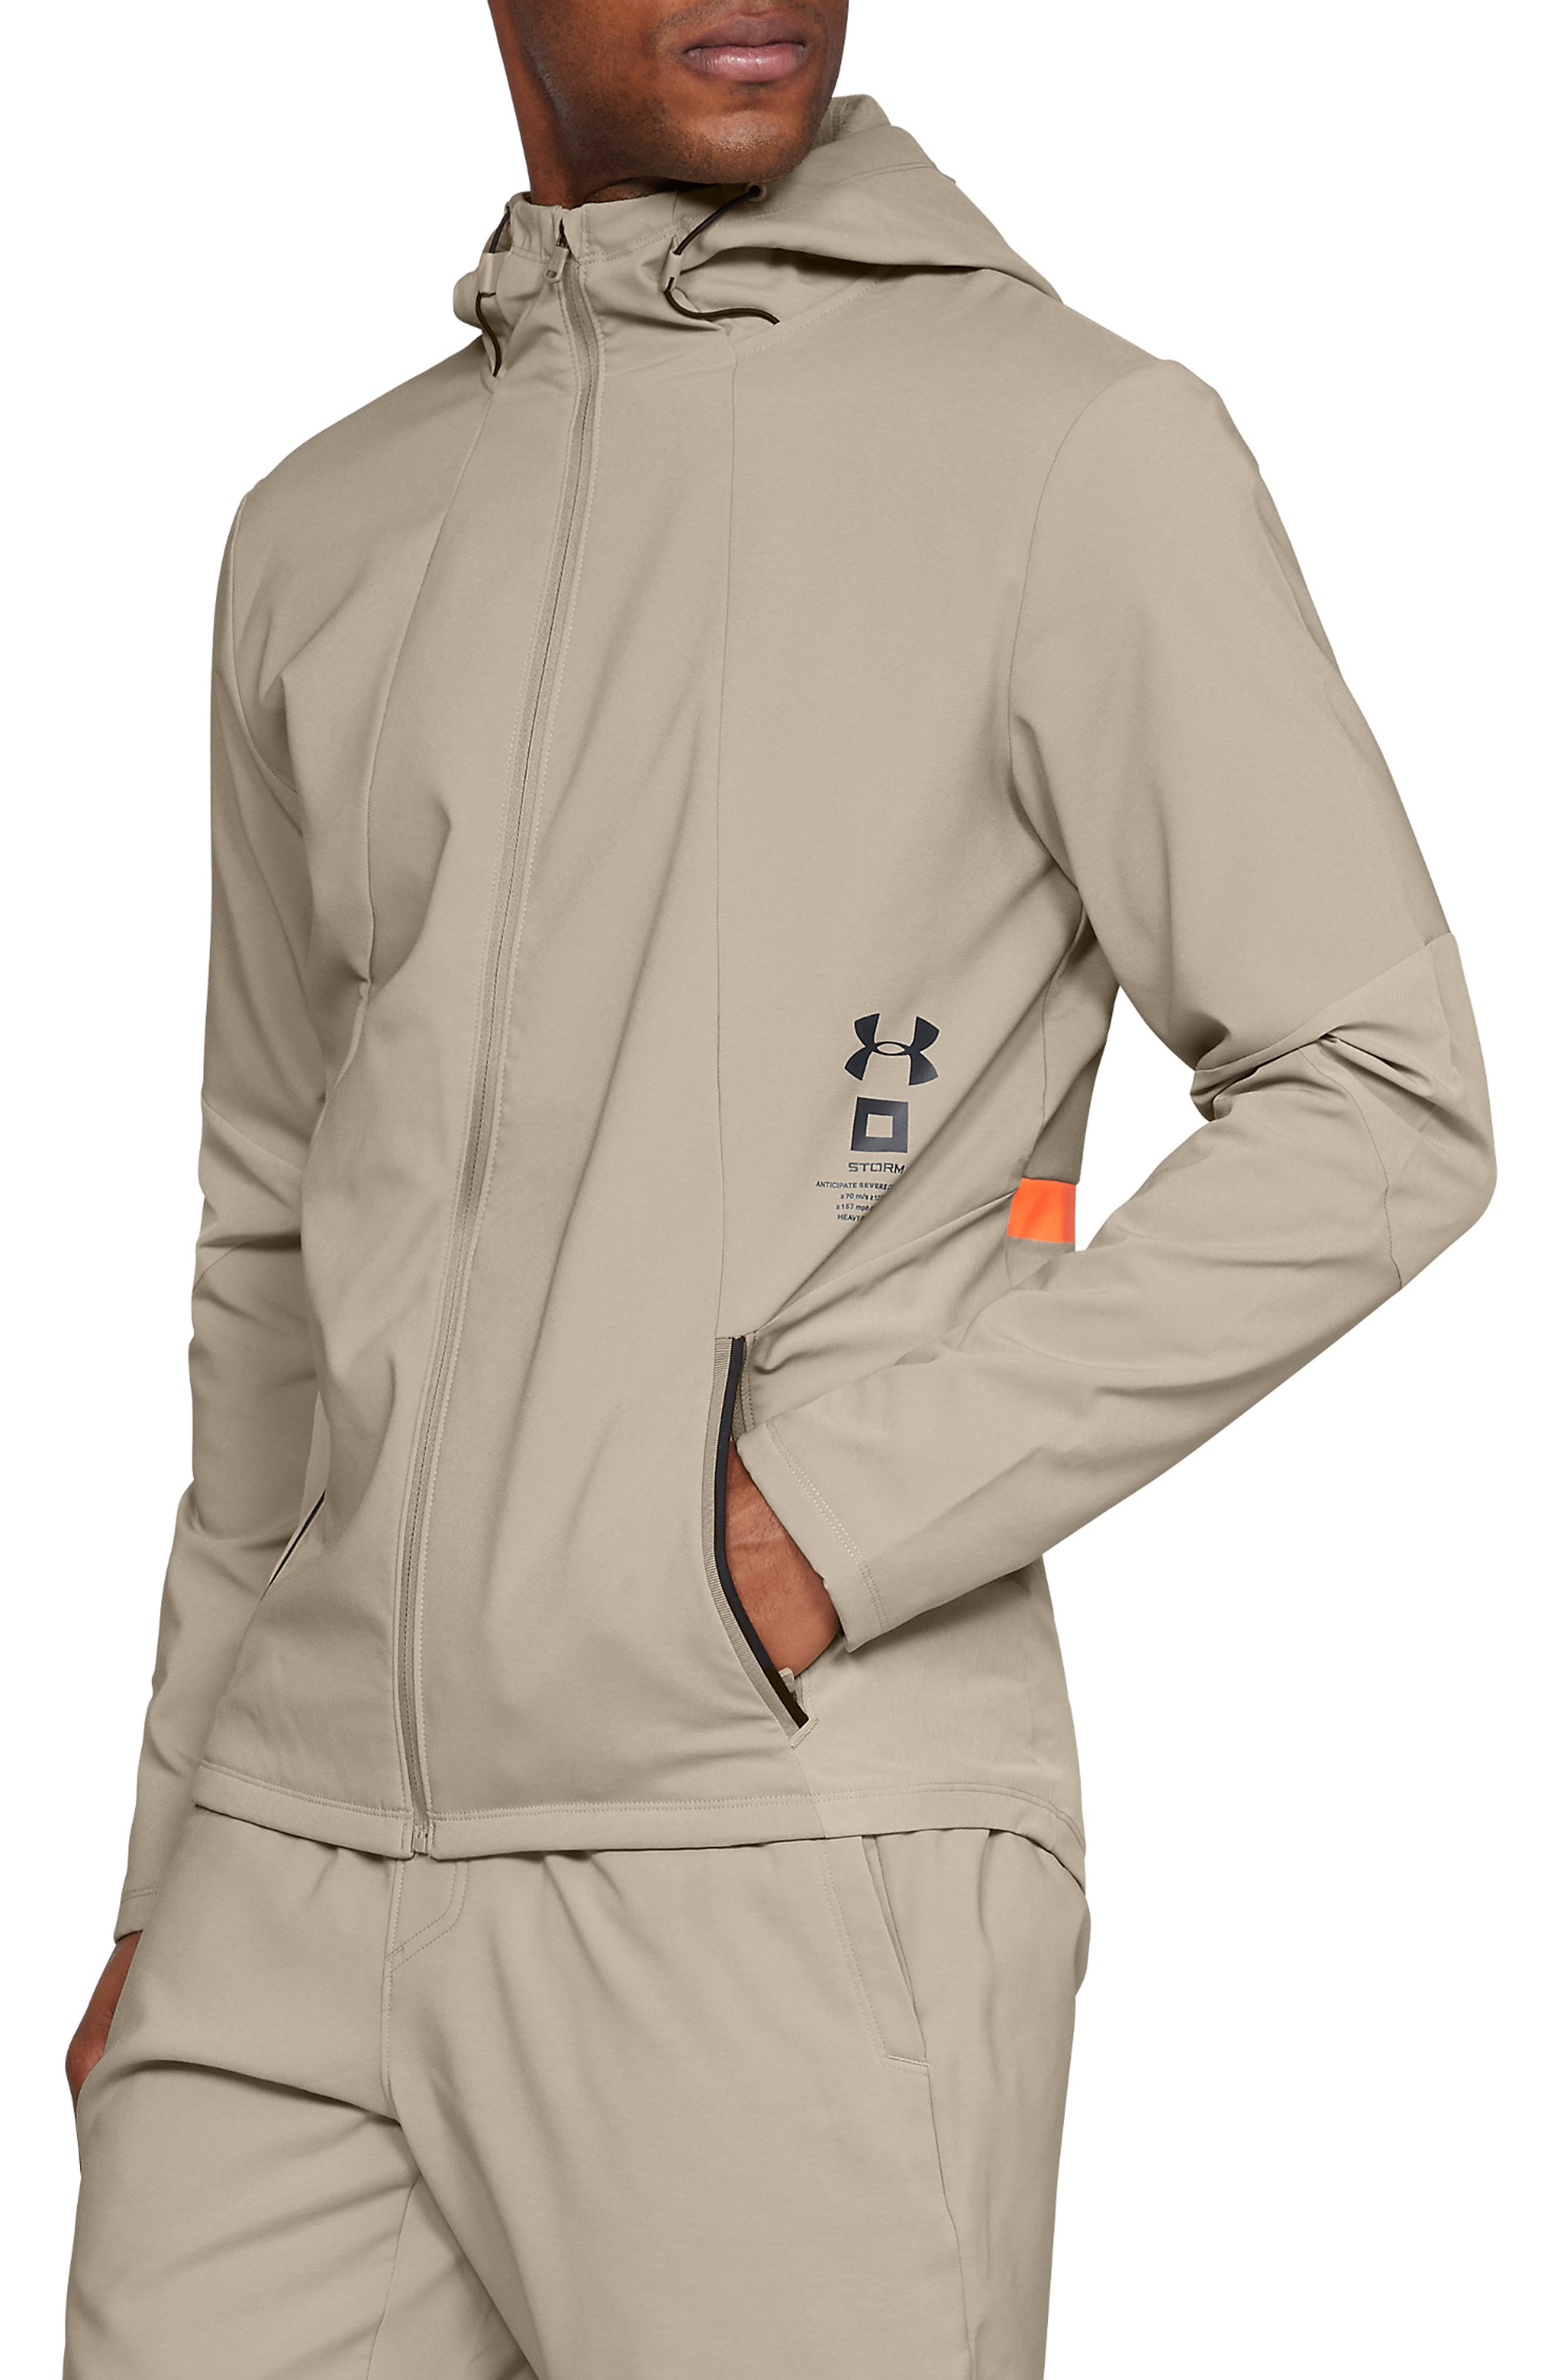 Storm Cyclone Water Repellent Hooded Jacket, Main, color, CITY KHAKI/ BLACK